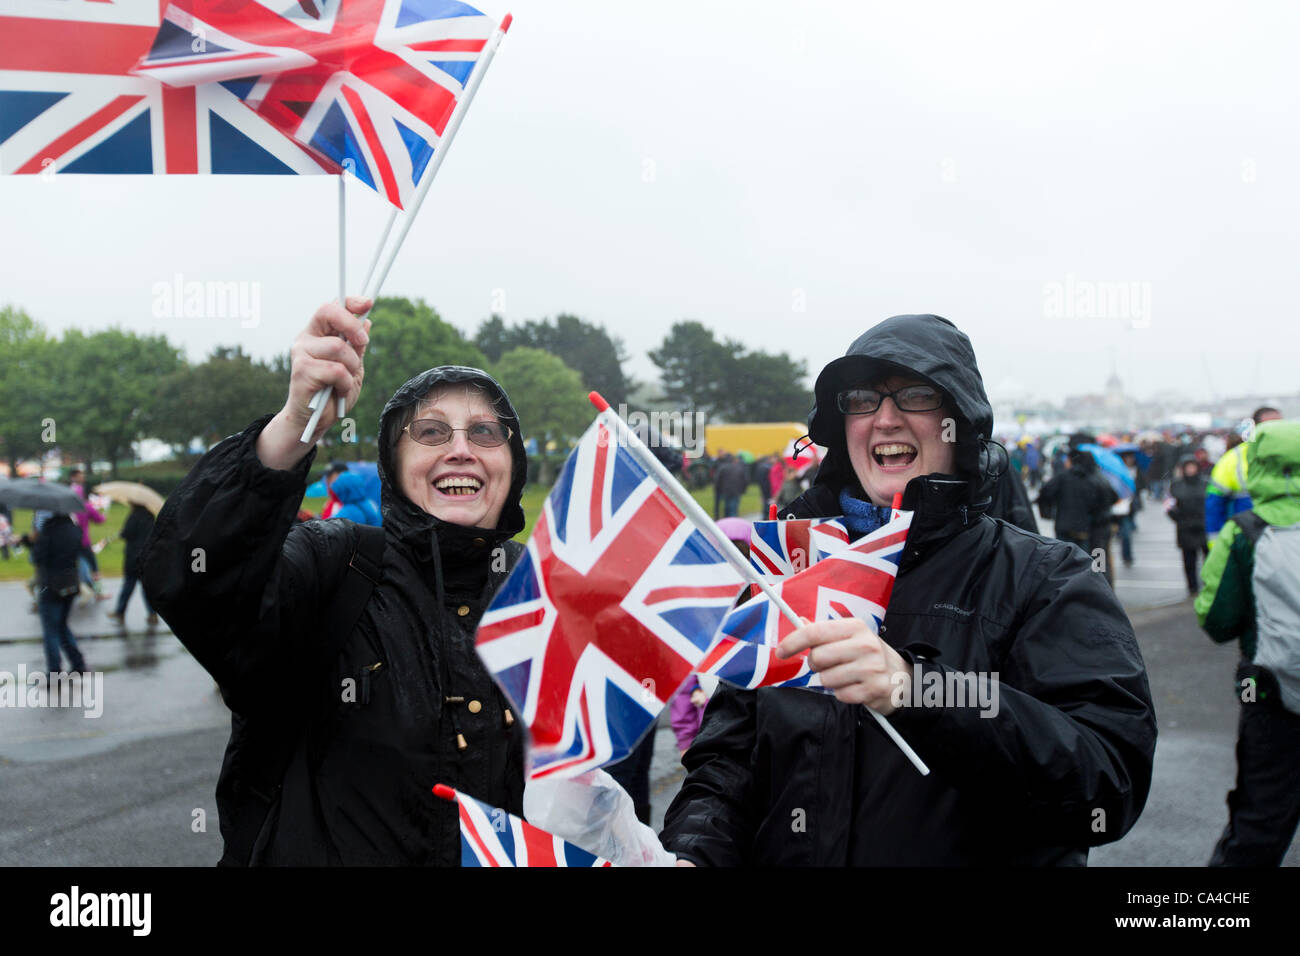 SOUTHAMPTON, UK, 5th June 2012. The rain does not dampen spirits ahead of the the 'Three Queens' event in - Stock Image